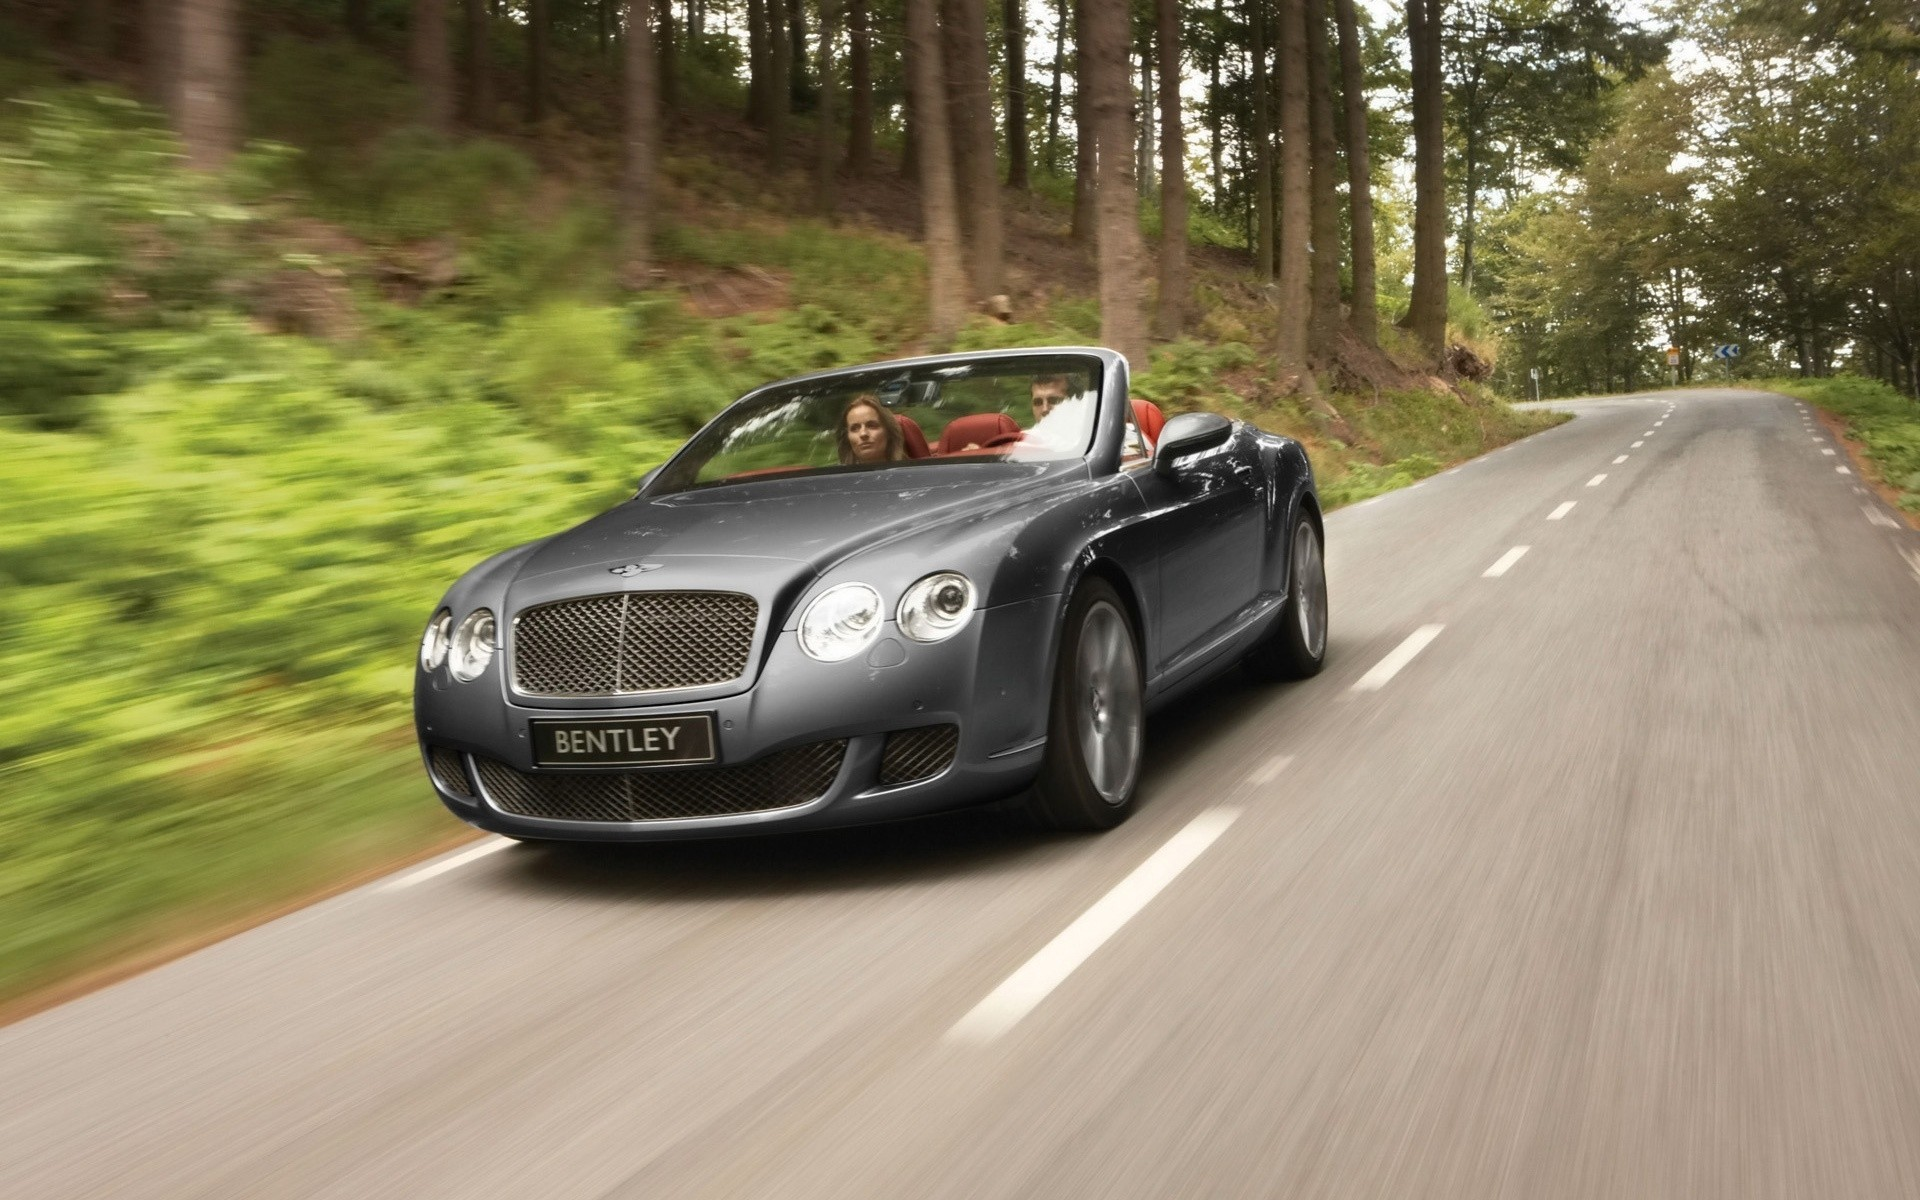 Bentley Continental GTC скорость 2009